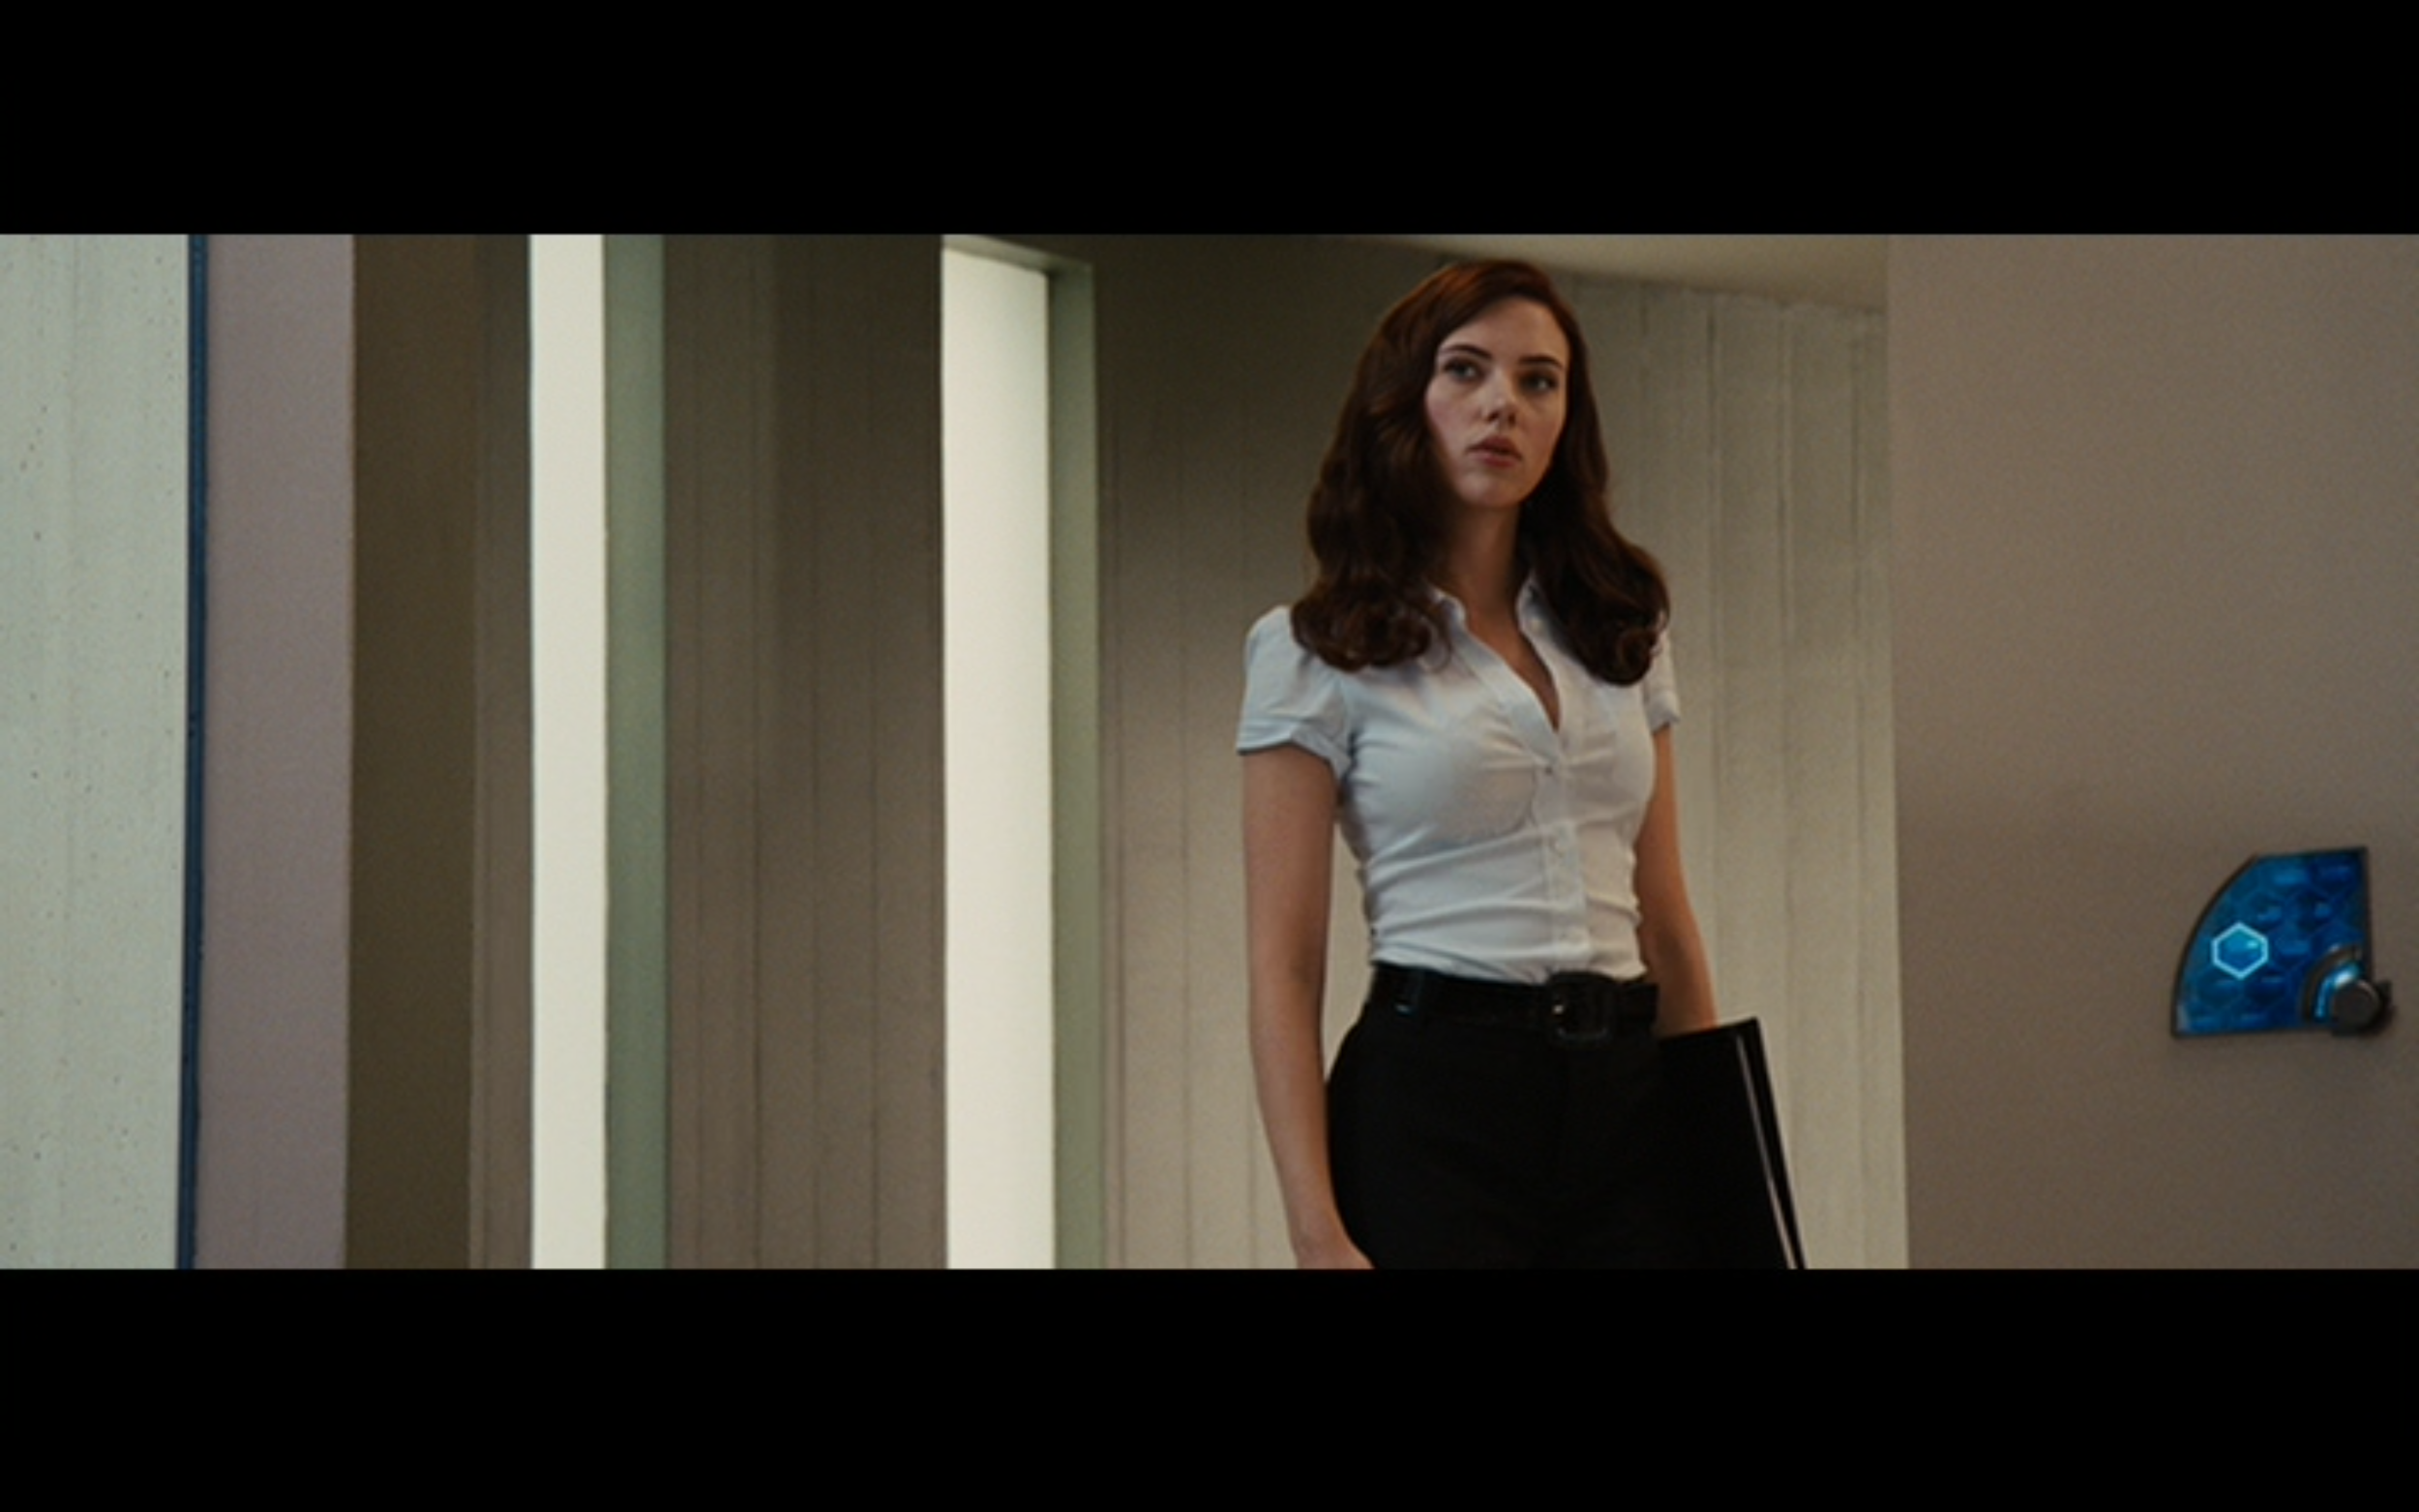 Figure 1: Natasha Romanoff's first appearance as Natalie Rushman in  Iron Man 2 . Photo credit: screen capture (Paramount Pictures/Marvel Studios).